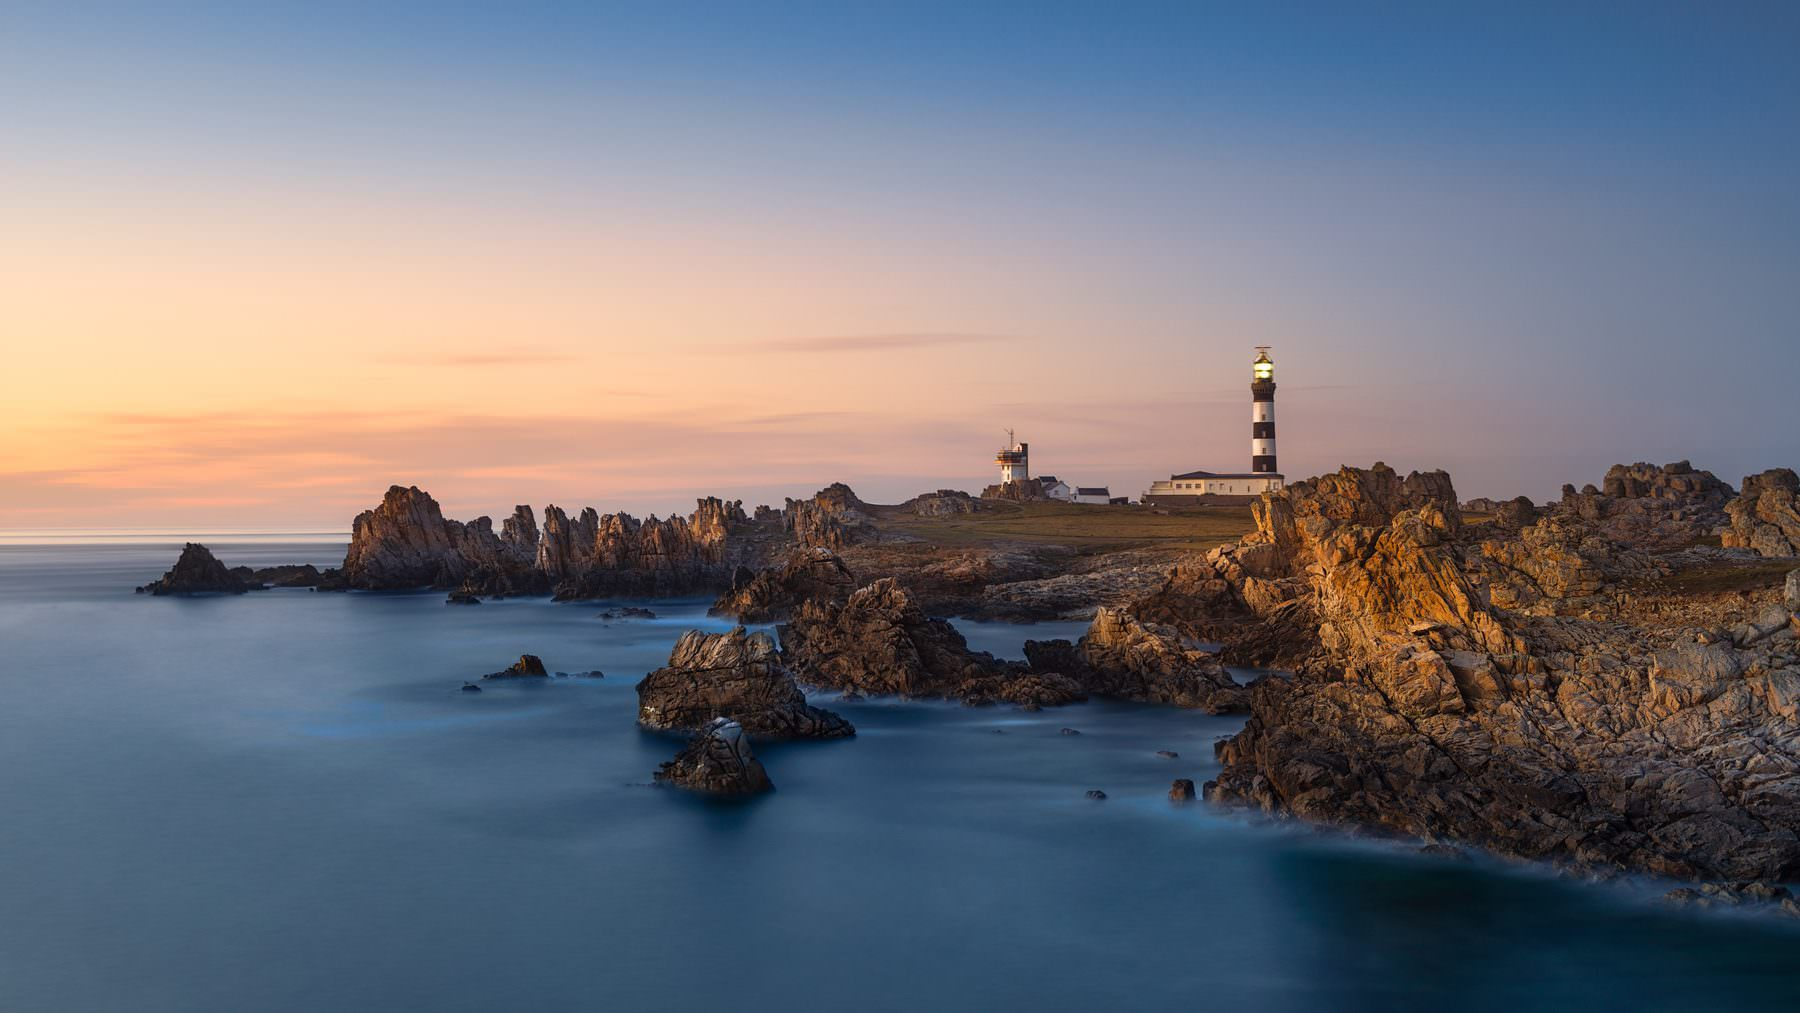 Lighthouse - Creac'h of d'ile Ouessant, Bretagne, France - After sunset glow - © by Gerry Pacher